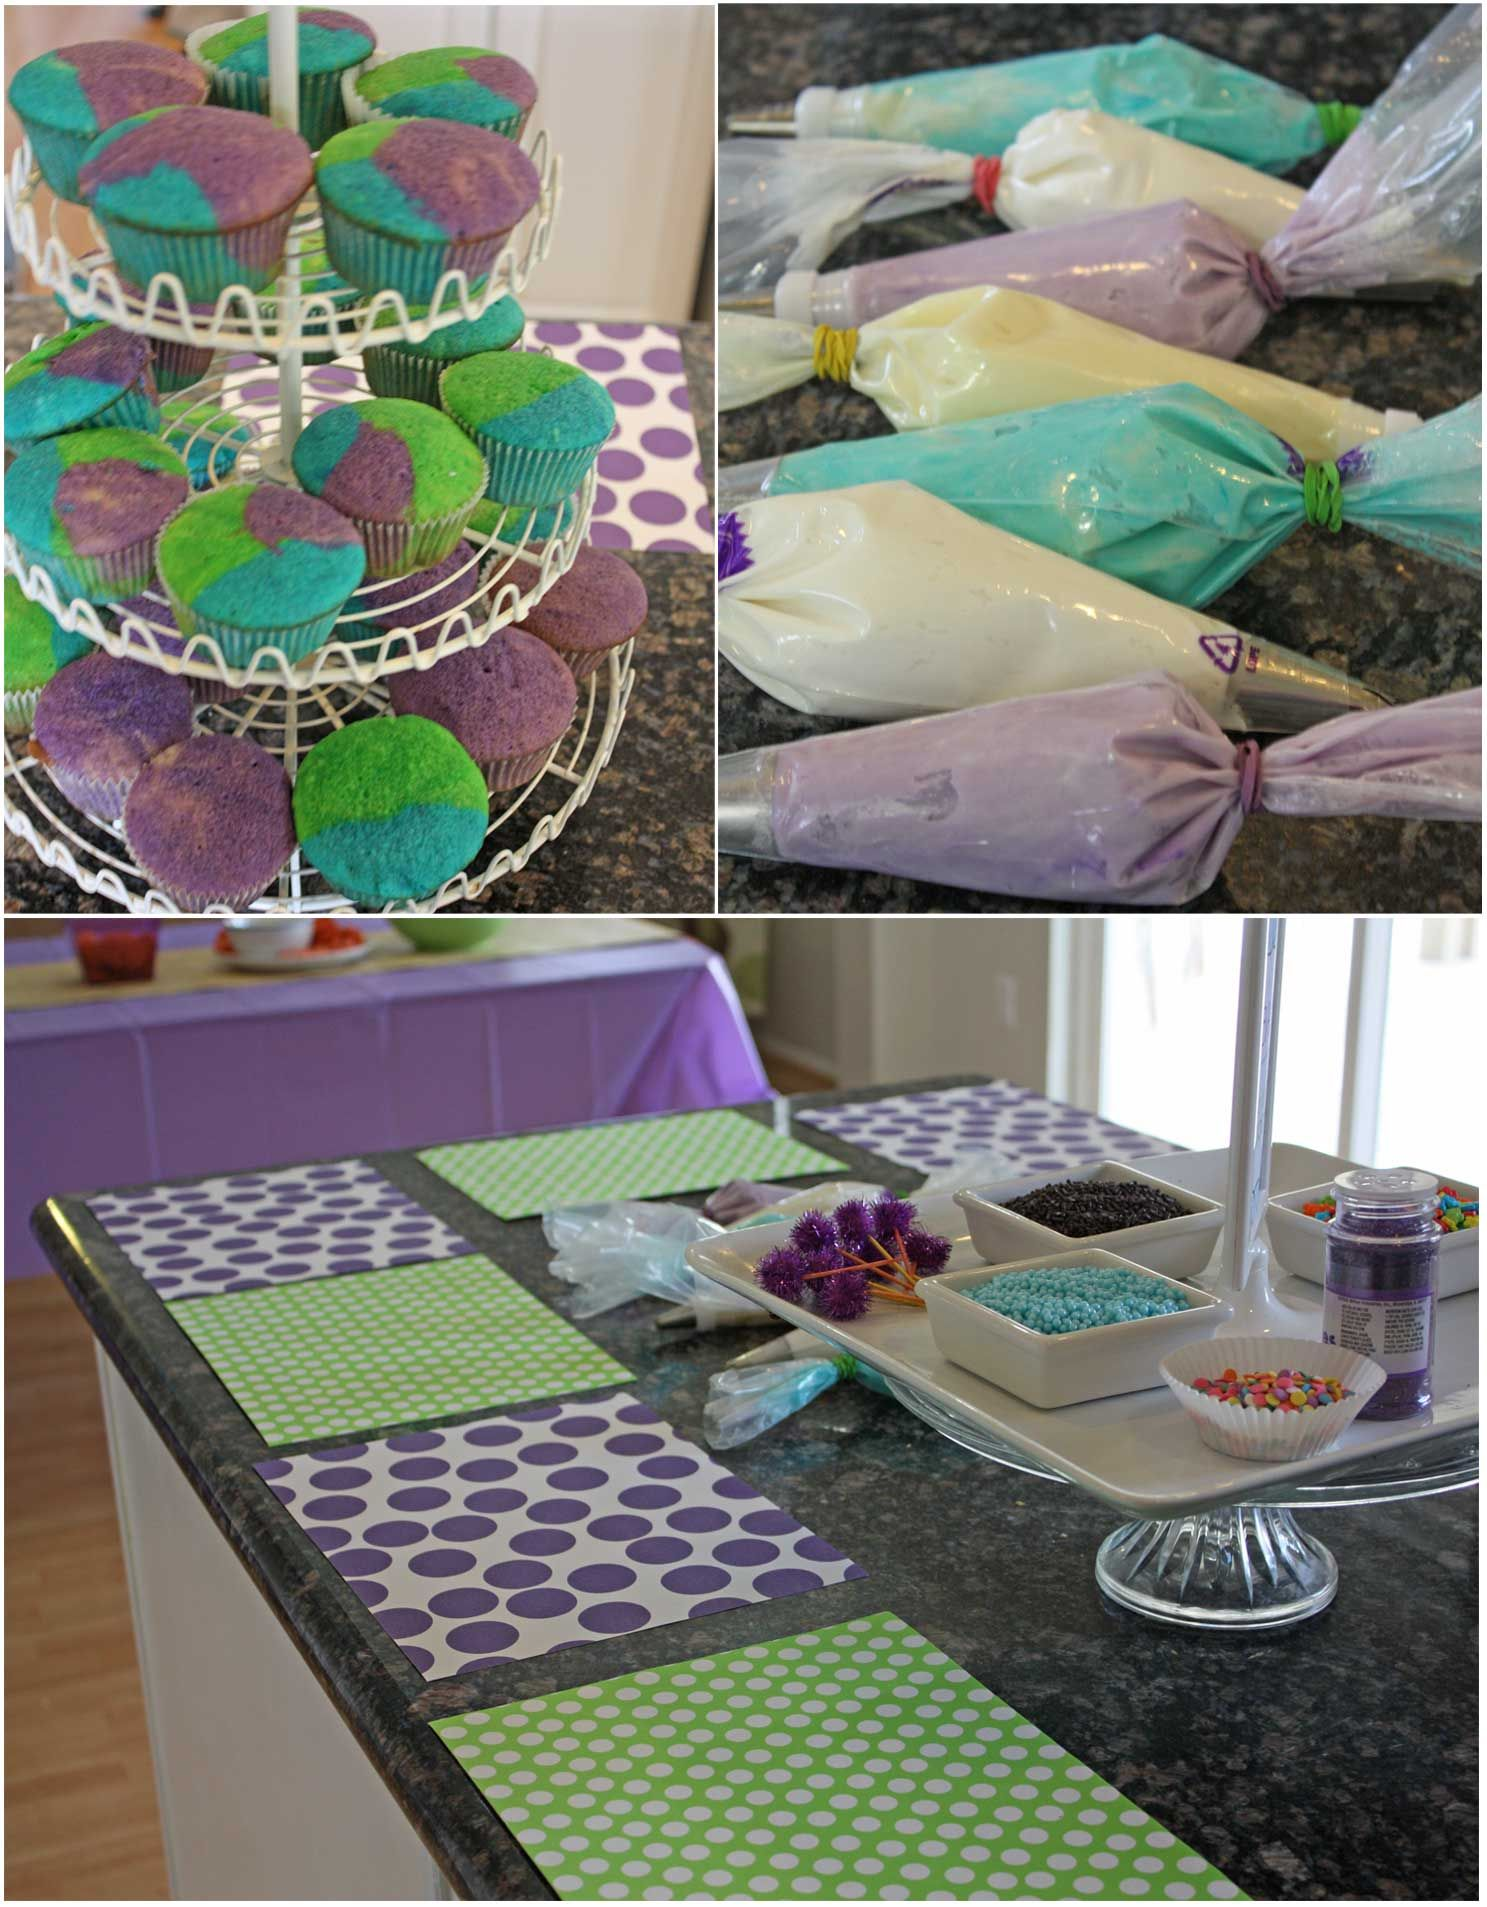 Baking & Craft Party for Tweens Party Ideas Pinterest